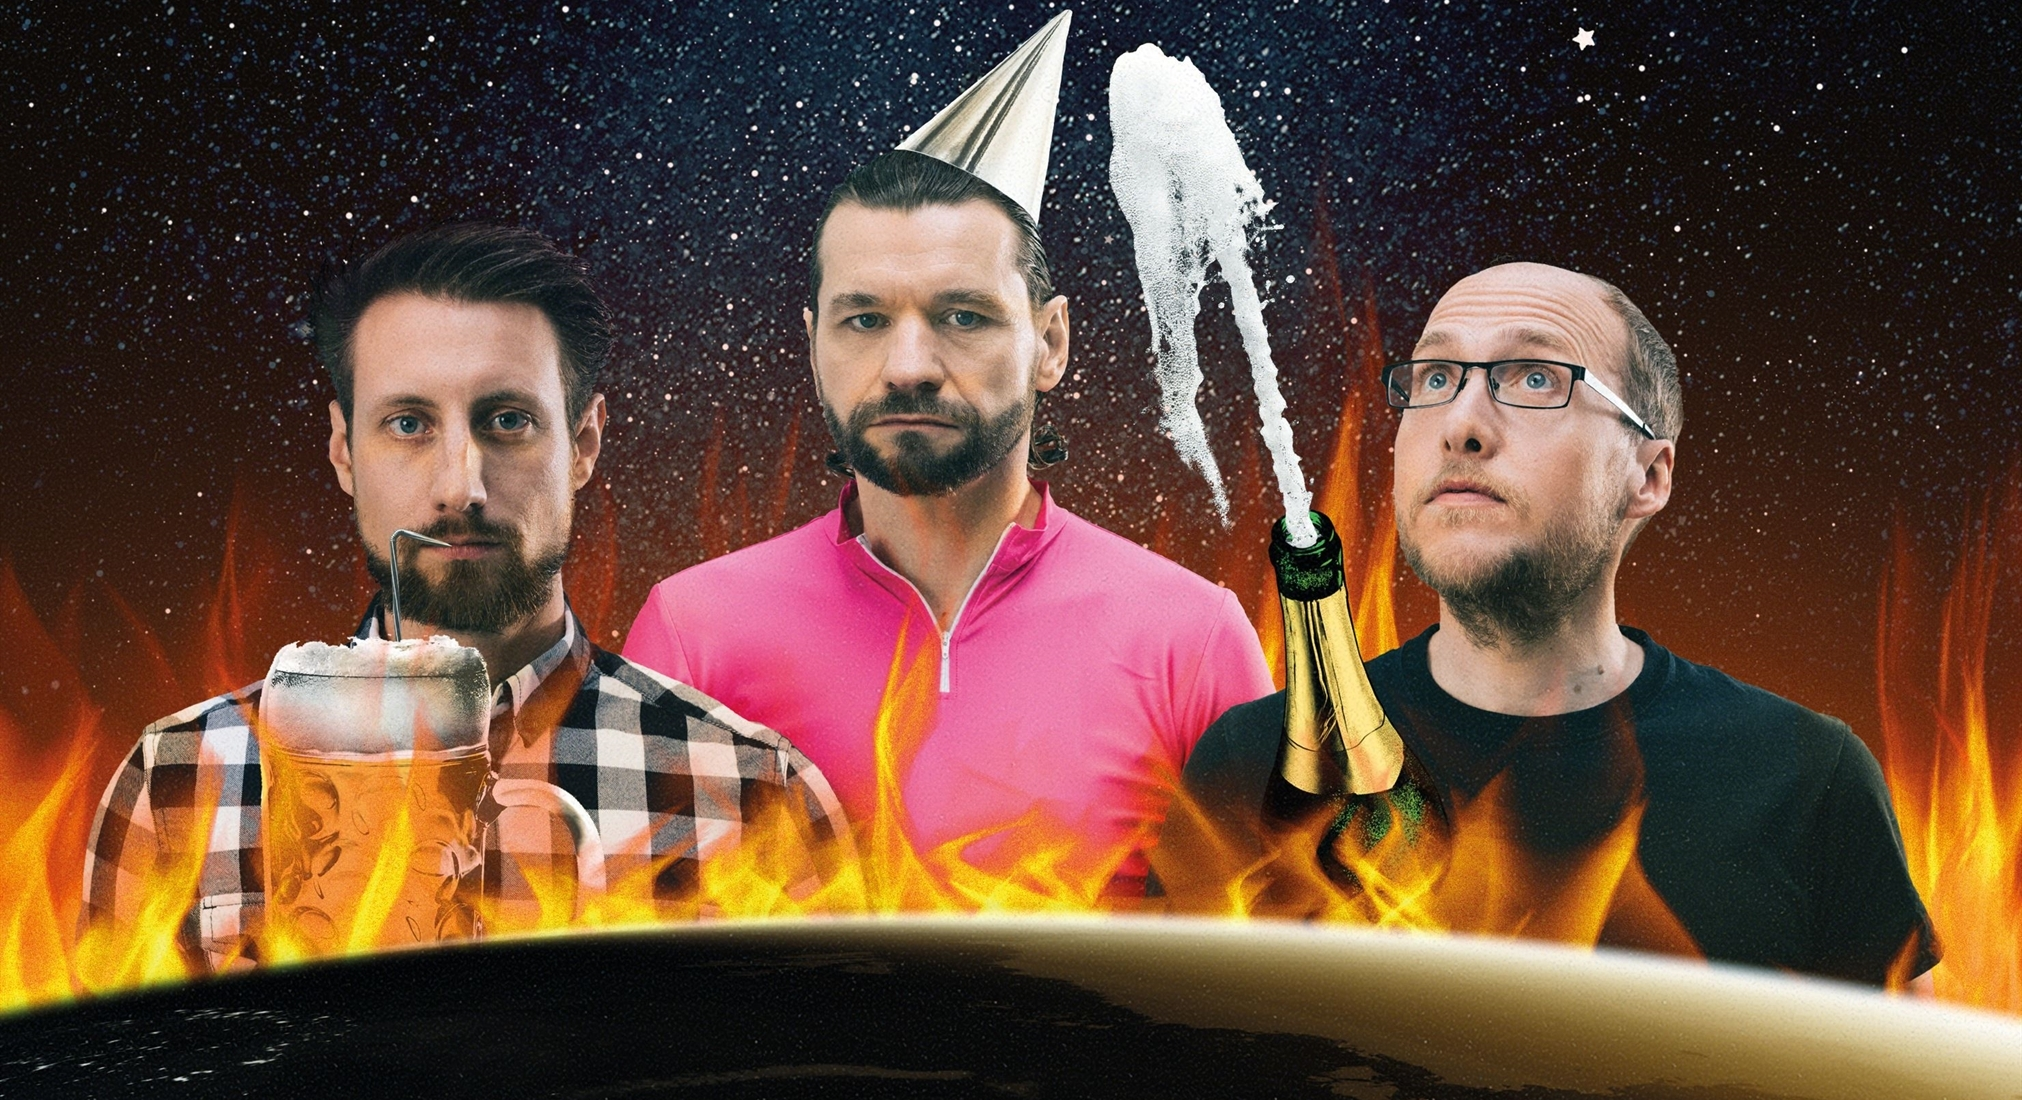 Science Busters am 15.04.2020 um 20:00 Uhr